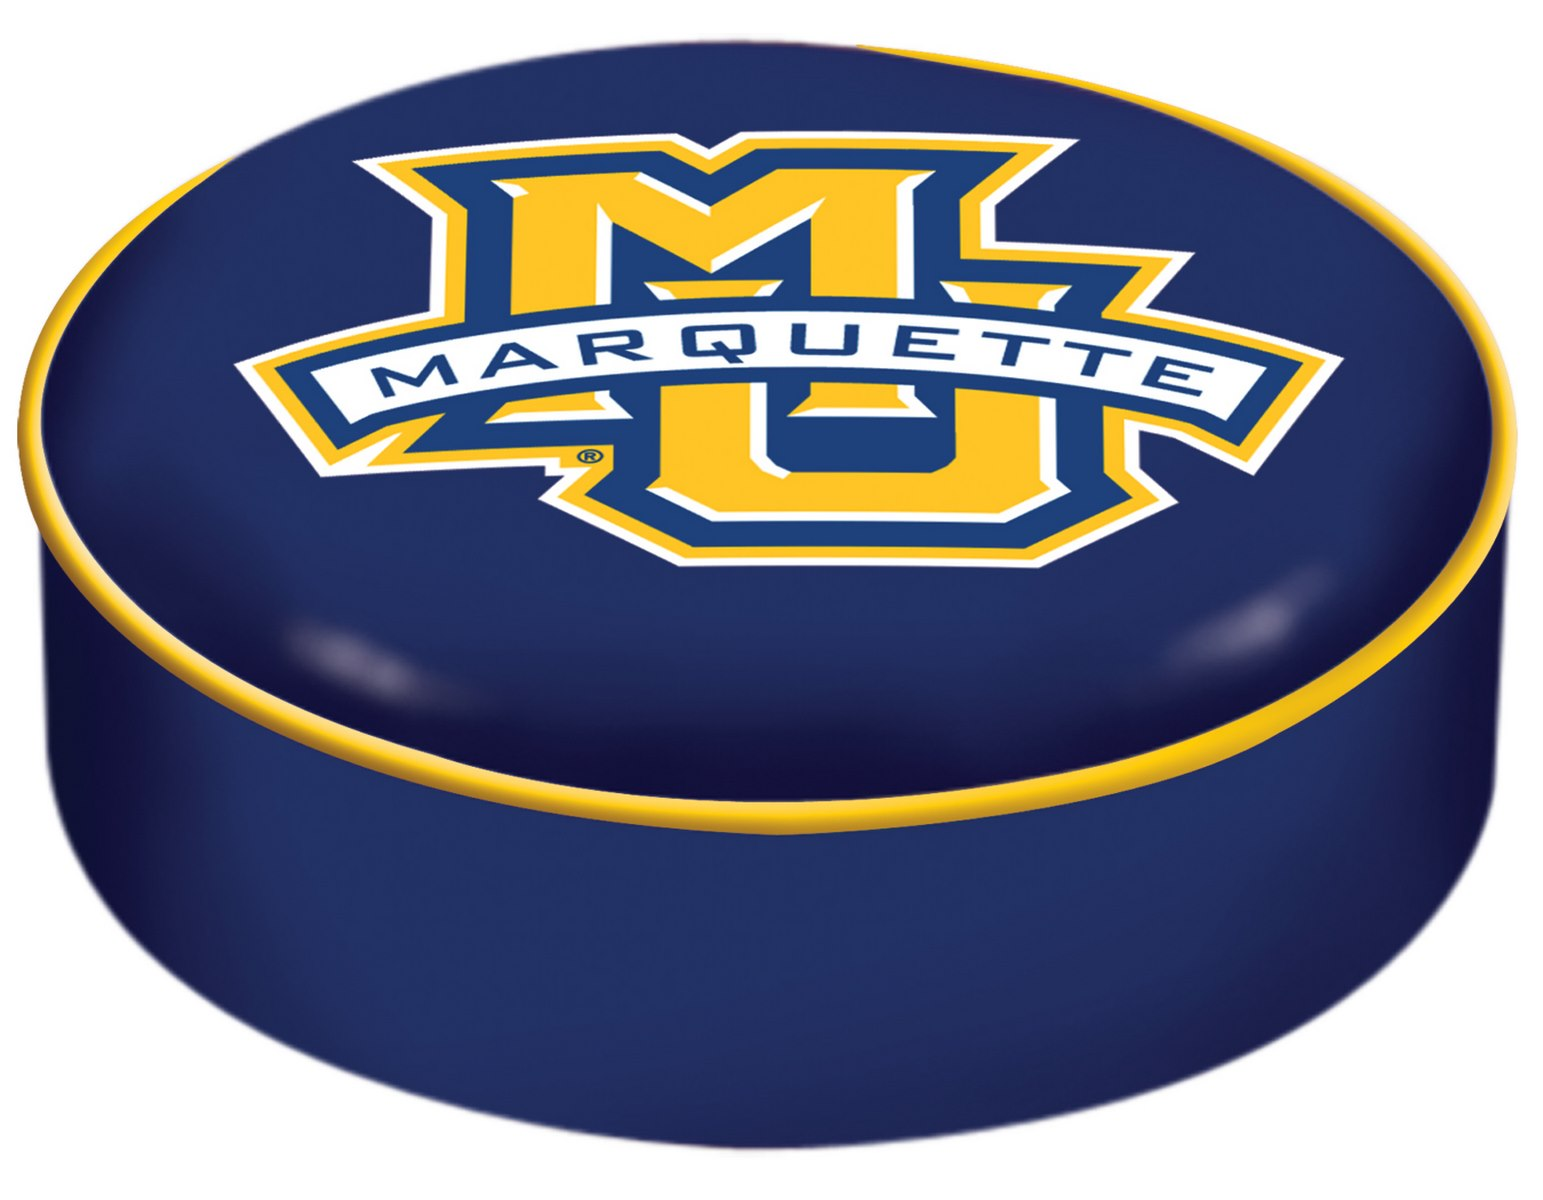 Marquette Golden Eagles Bar Stool Seat Cover Seat Covers : BSCMrqtte from www.teamsportscovers.com size 1543 x 1200 jpeg 147kB